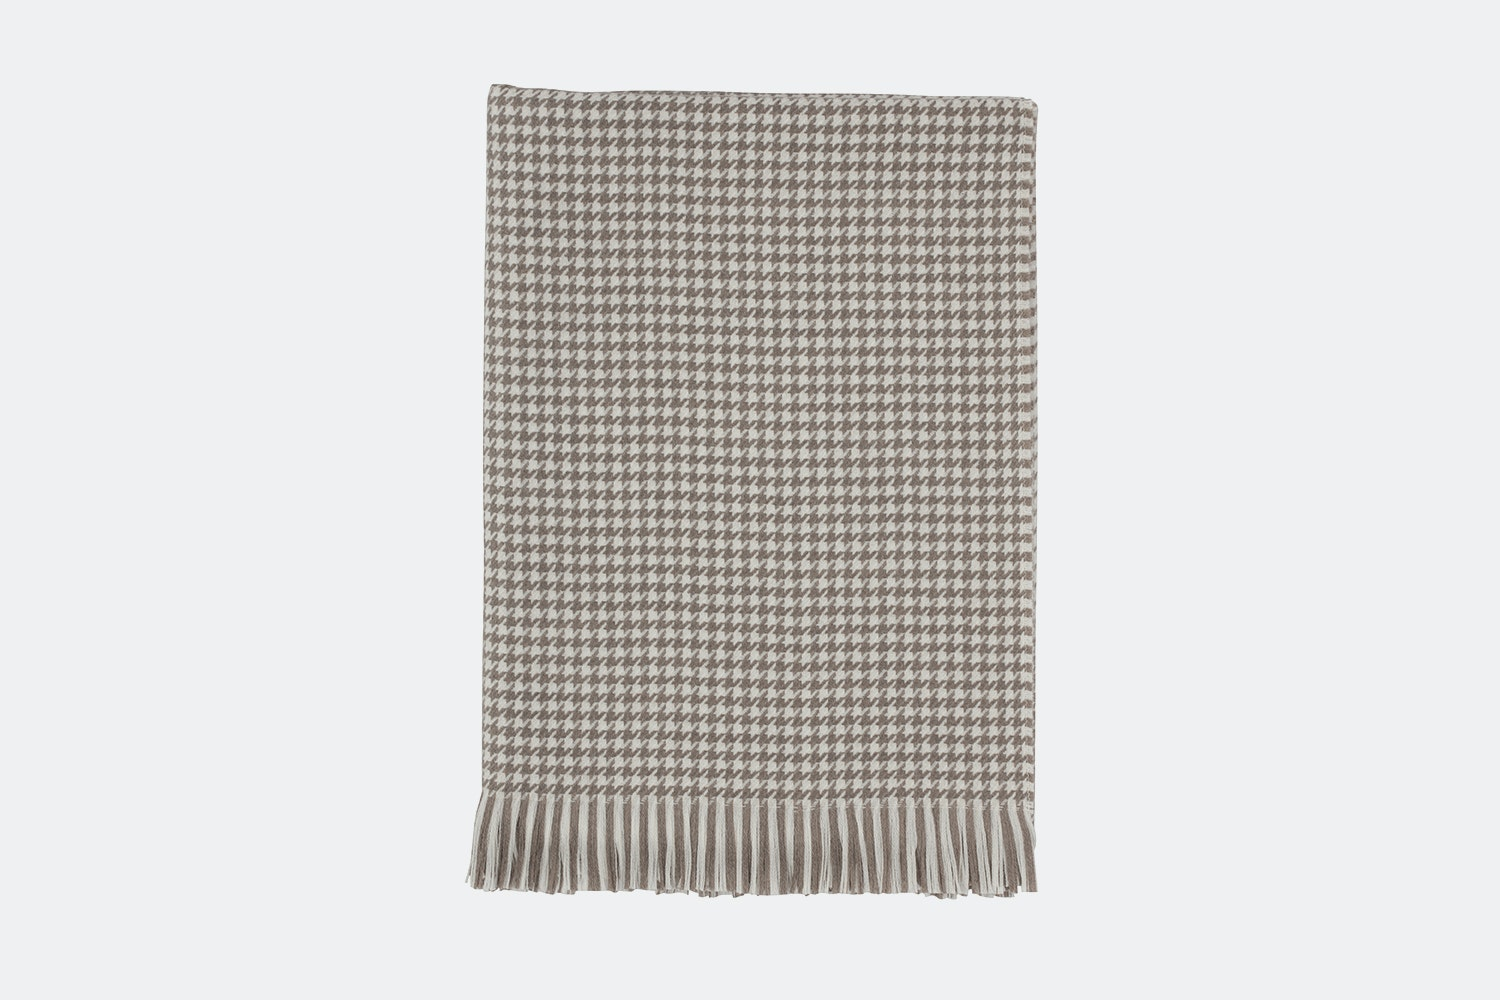 Driftwood & White Houndstooth